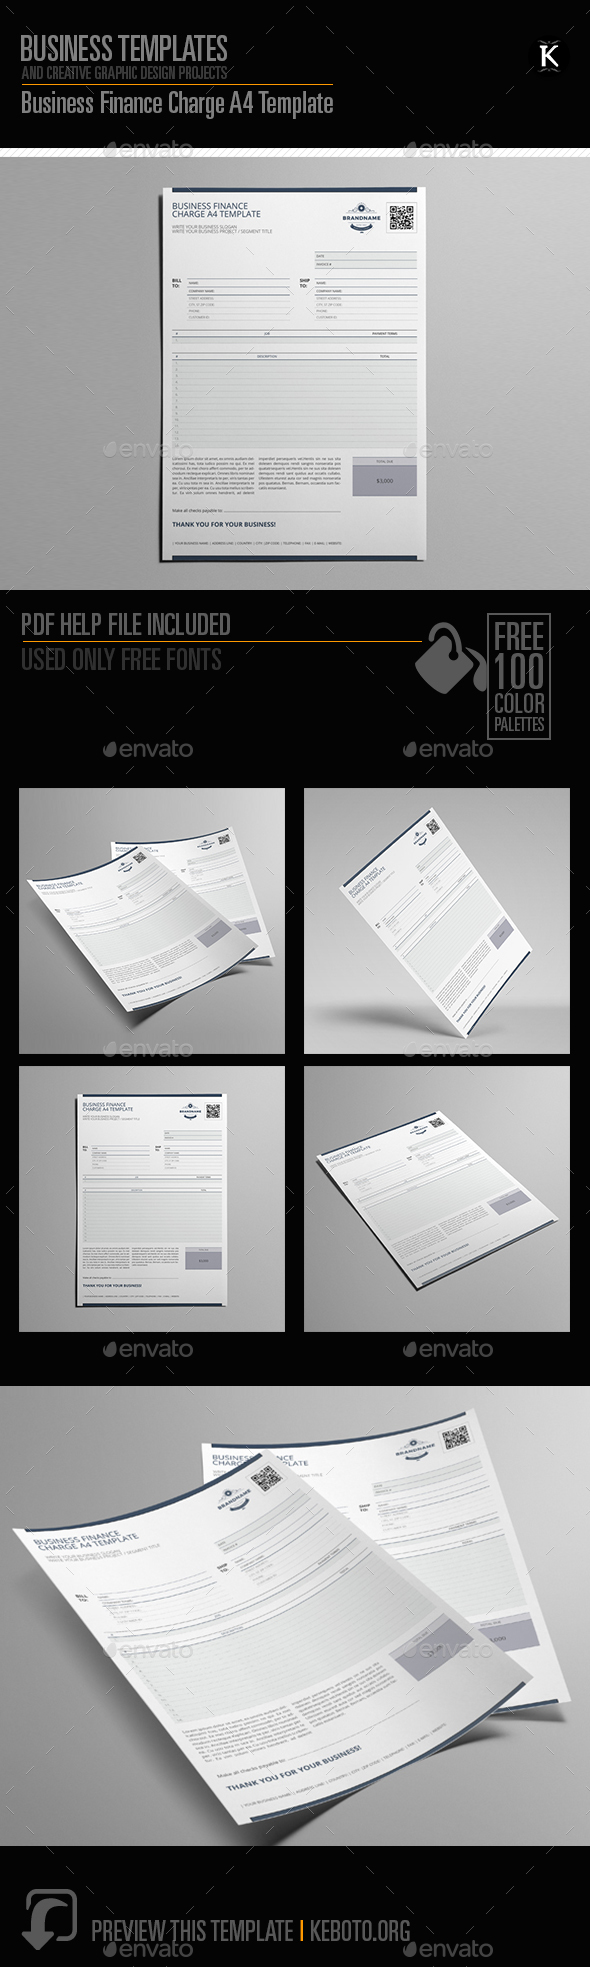 Business Finance Charge A4 Template - Miscellaneous Print Templates